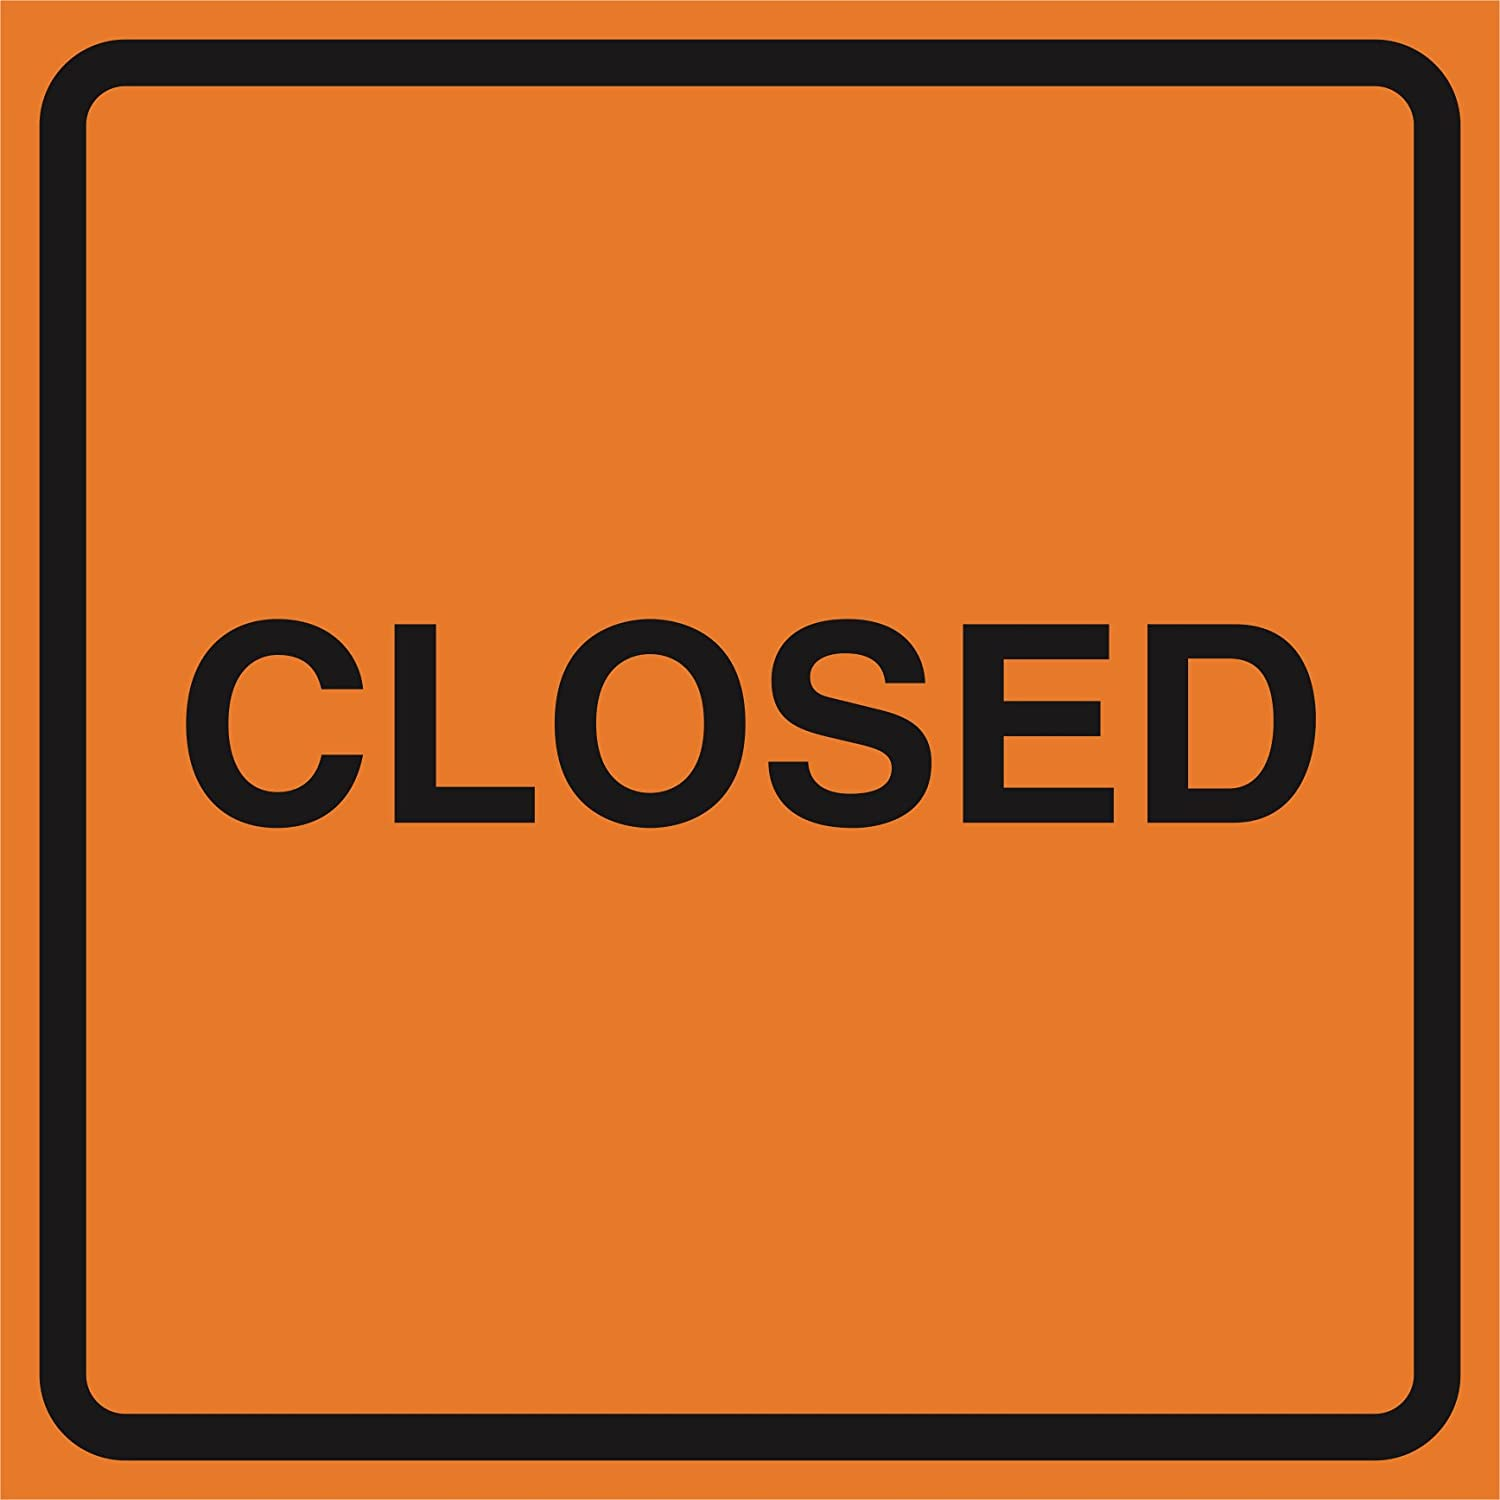 2 Pack - Closed Orange Construction Work Zone Area Job Site Notice Caution Road Street Signs Commercial Plastic, 12x12